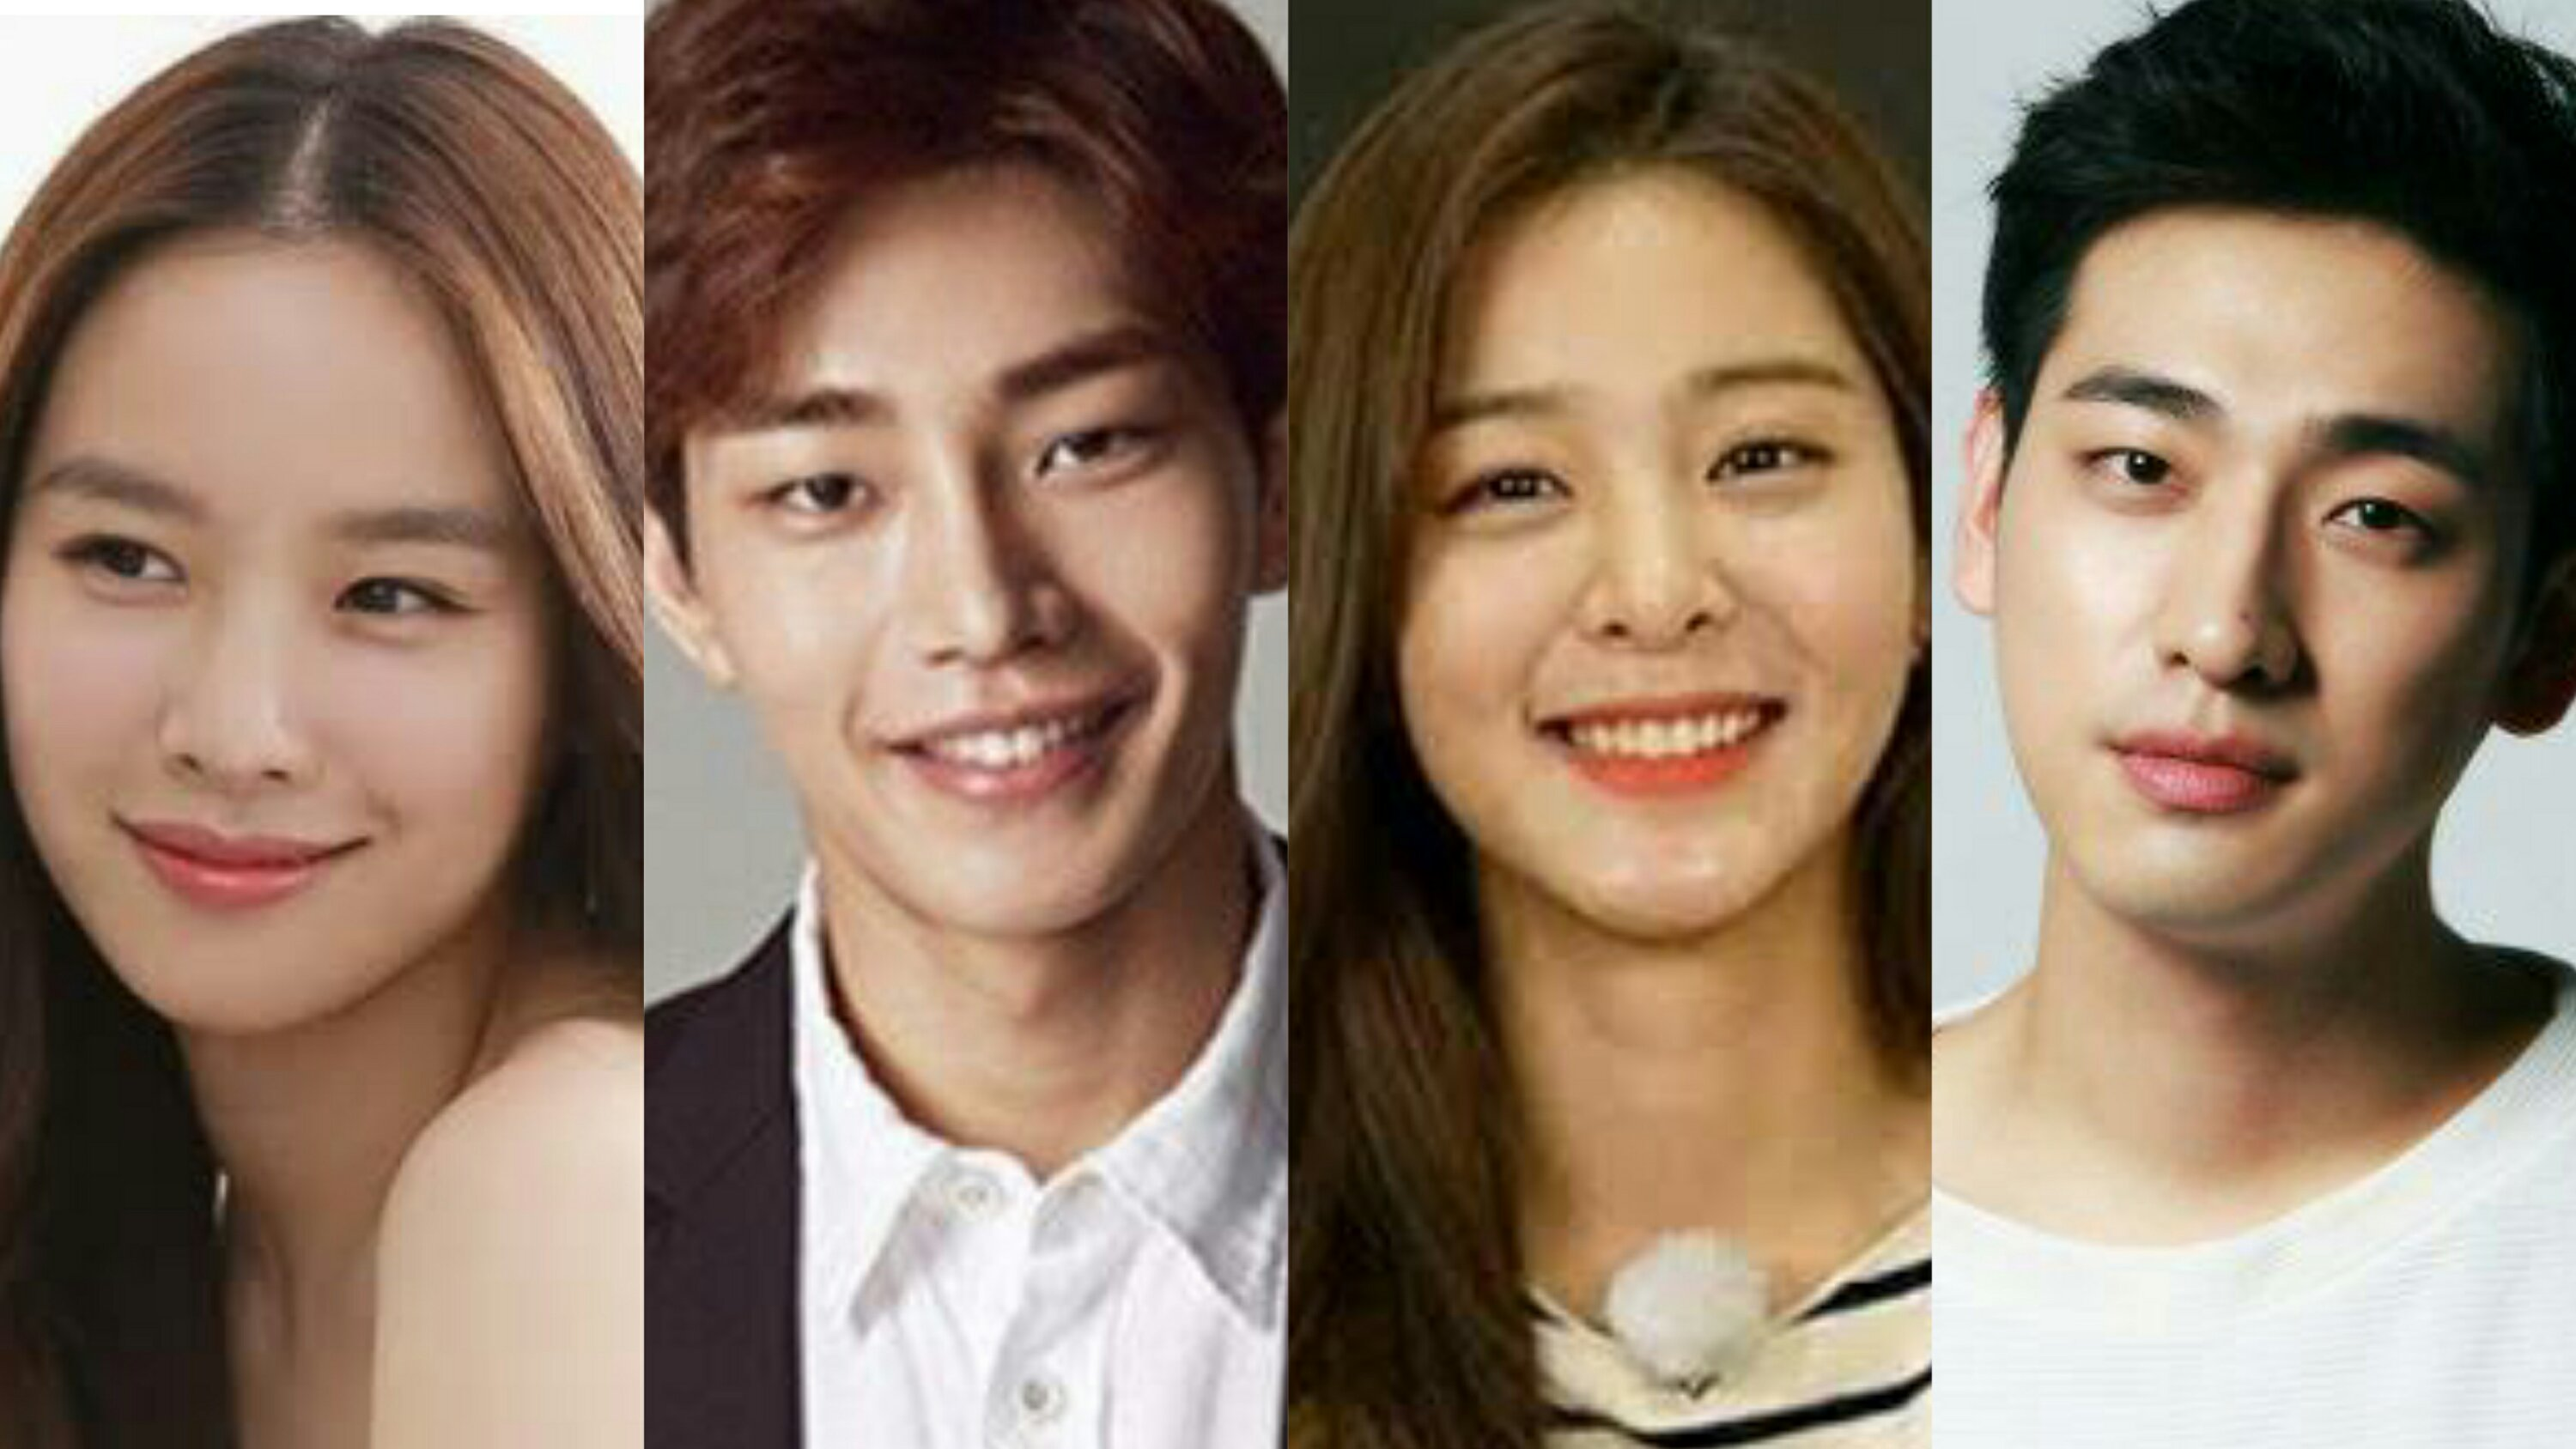 love is beautiful, life is wonderful drama cast